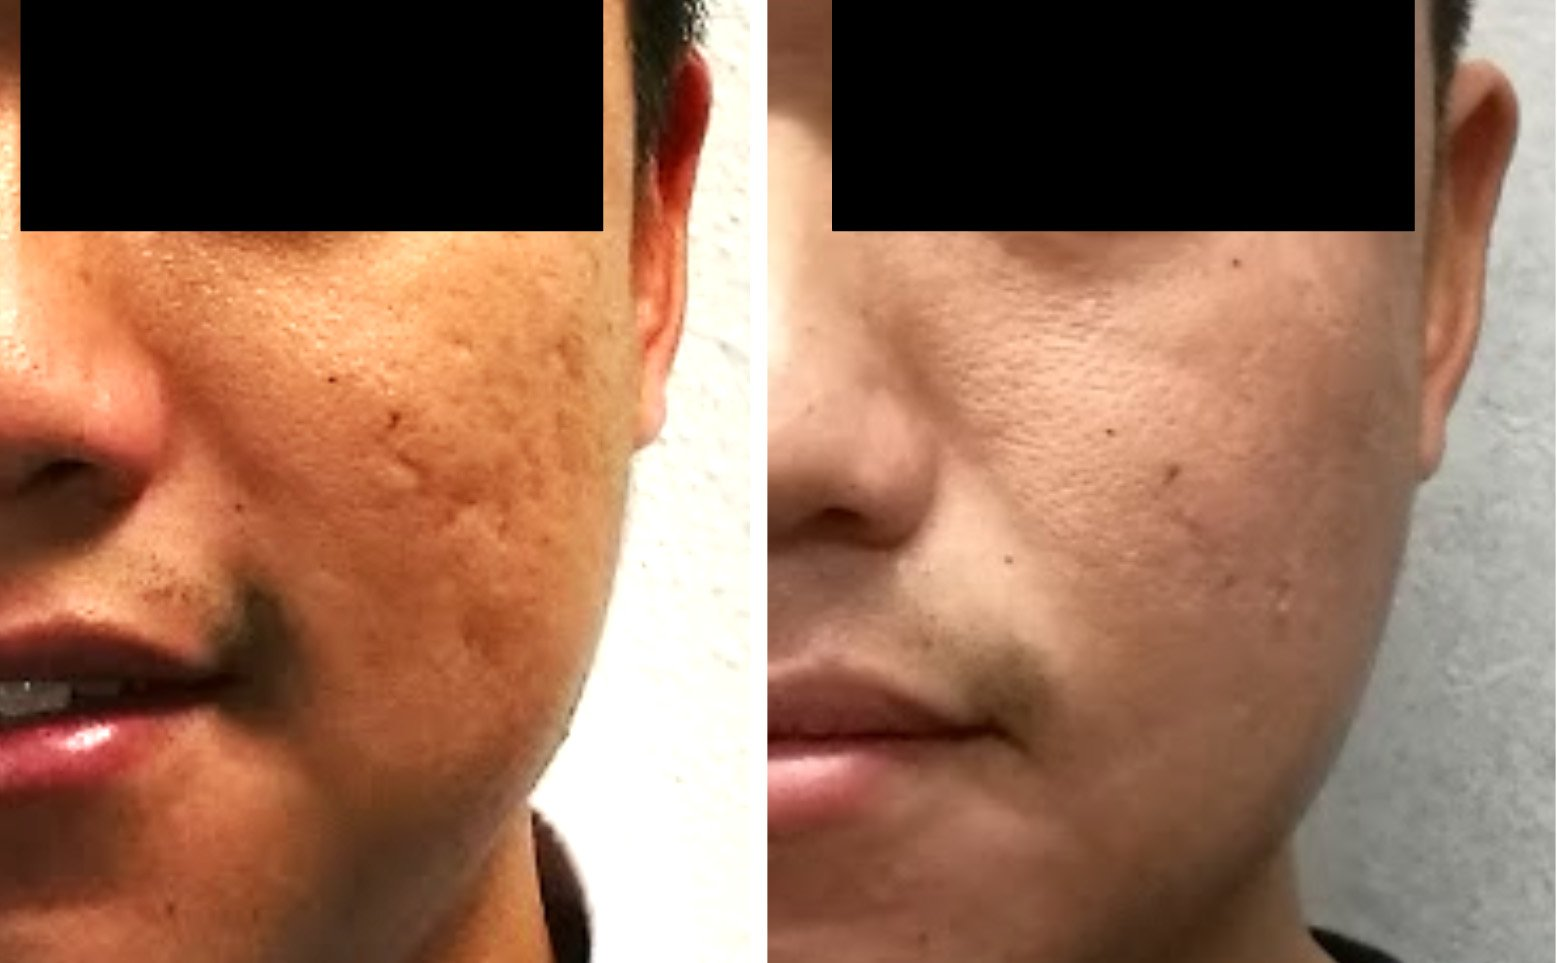 Acne Scars CAN Be 100% Cured - Dr Chua Cheng Yu